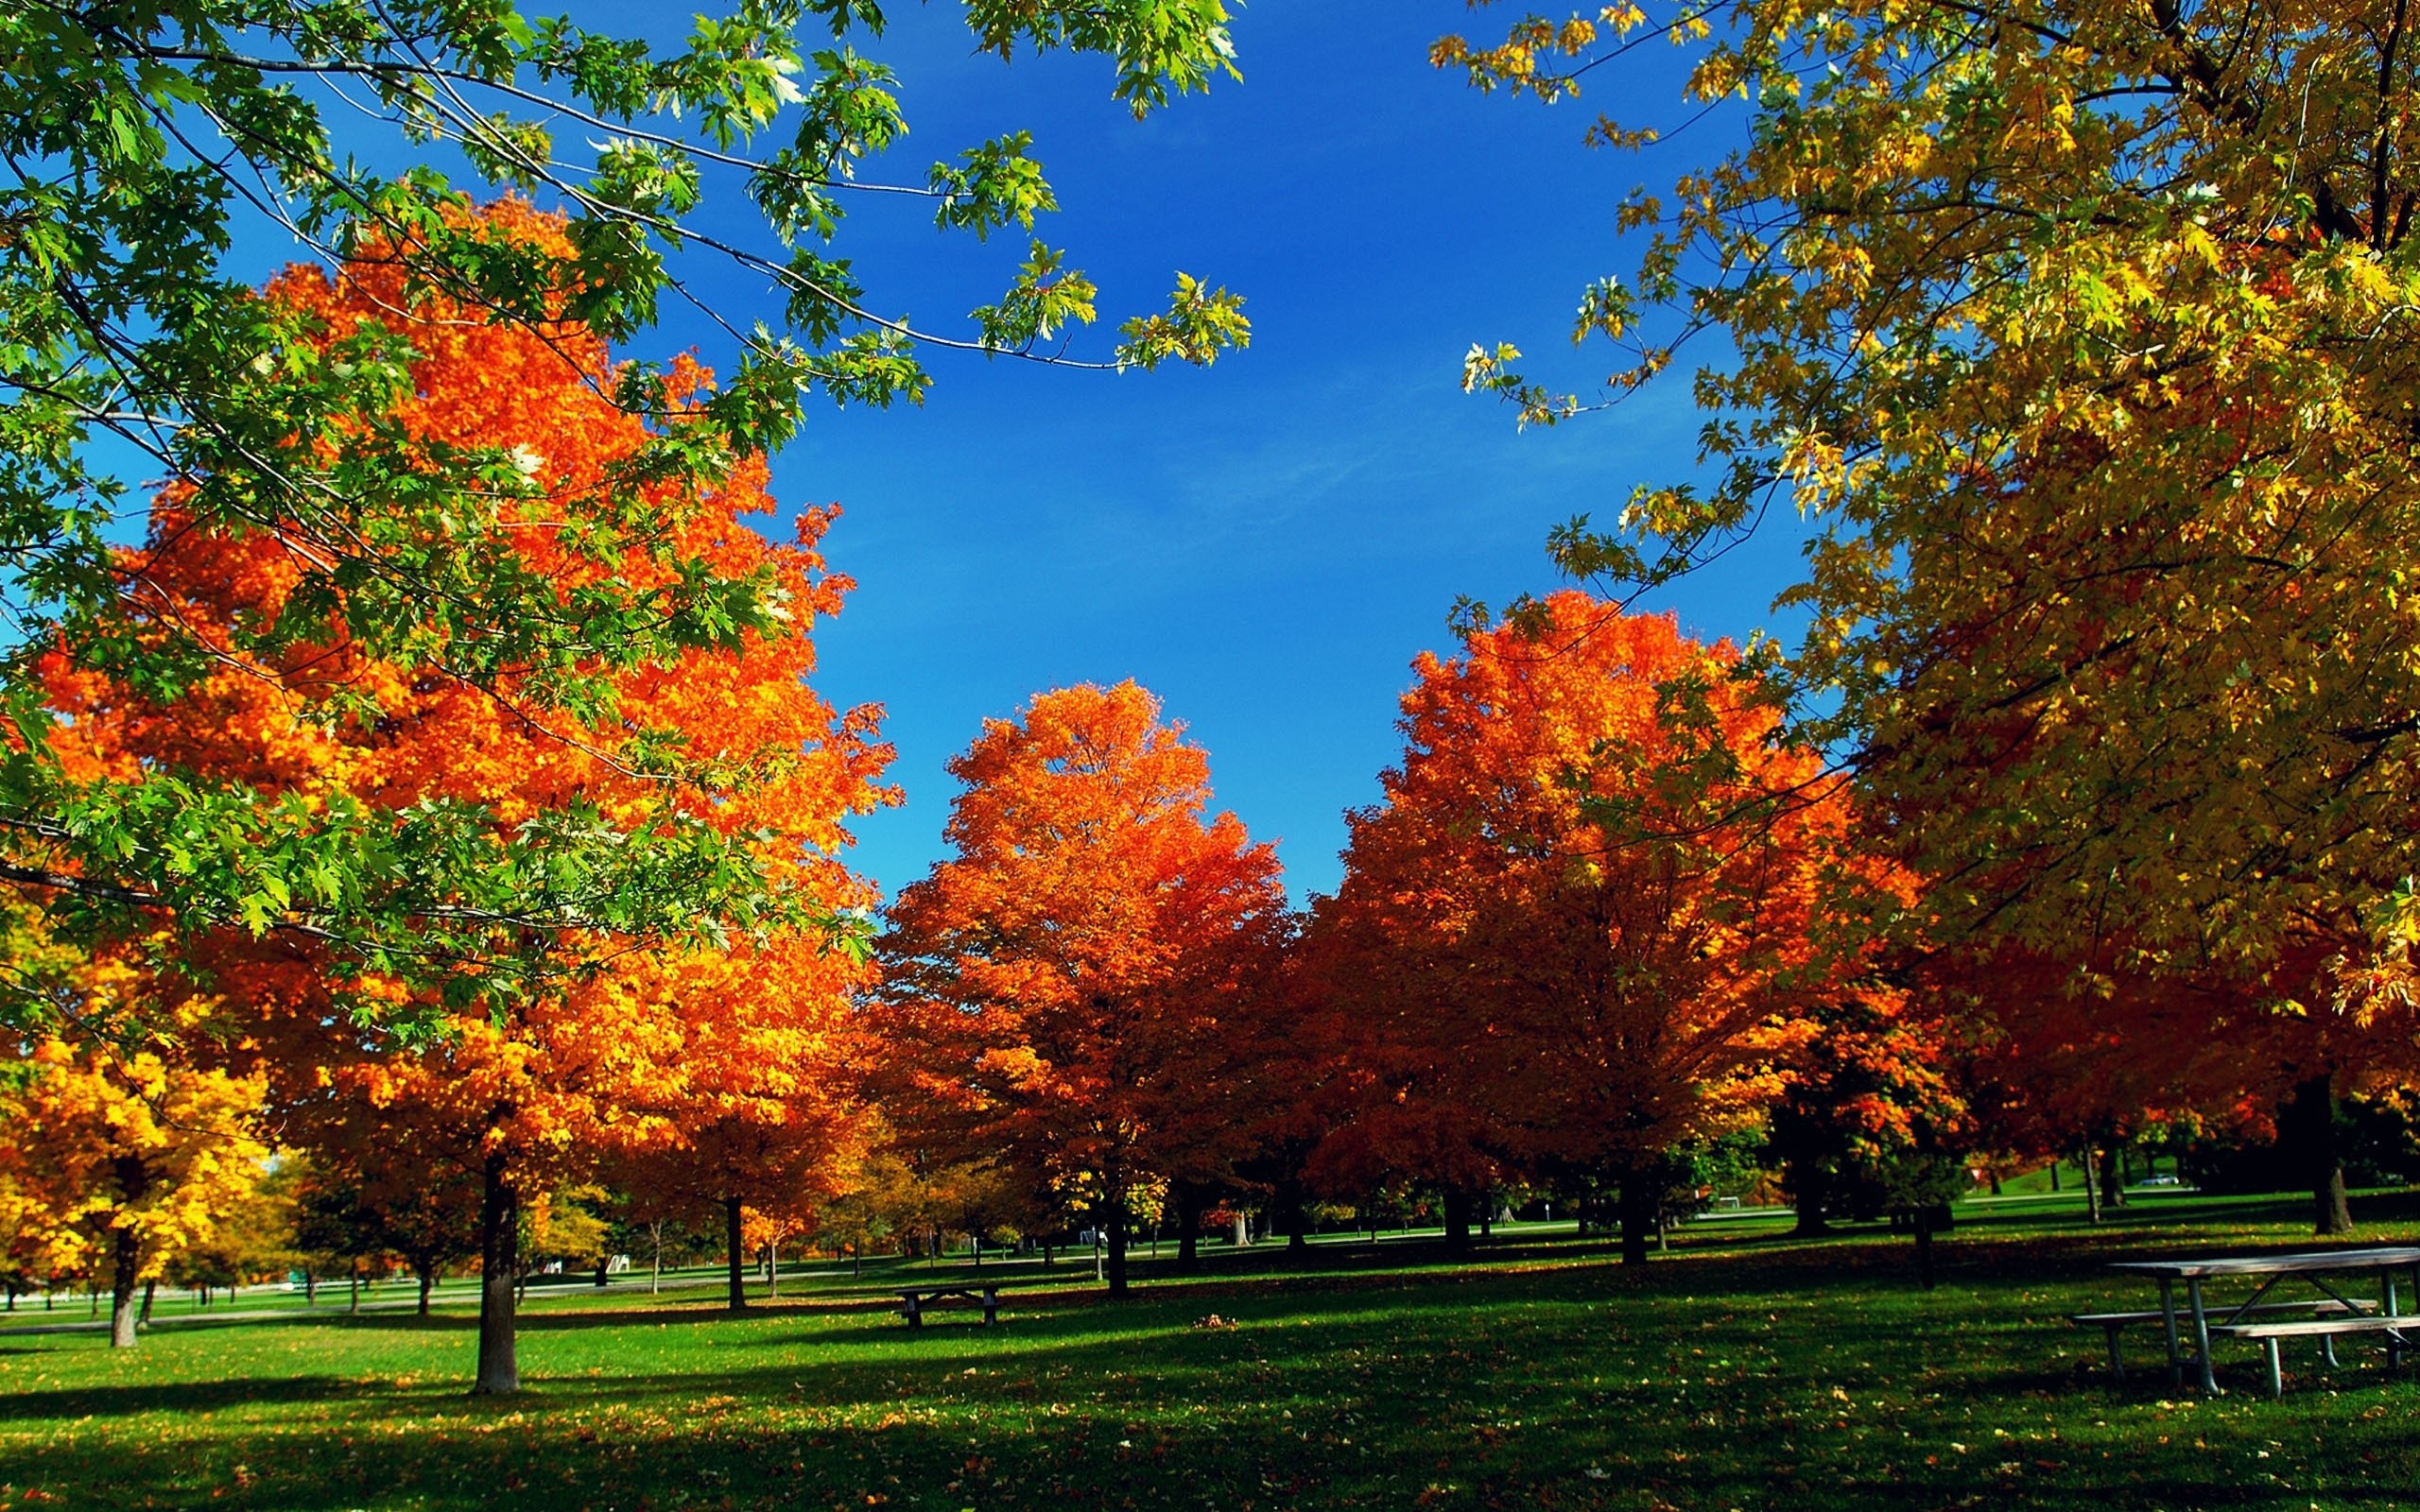 autumn hd widescreen wallpaper (71+ images)